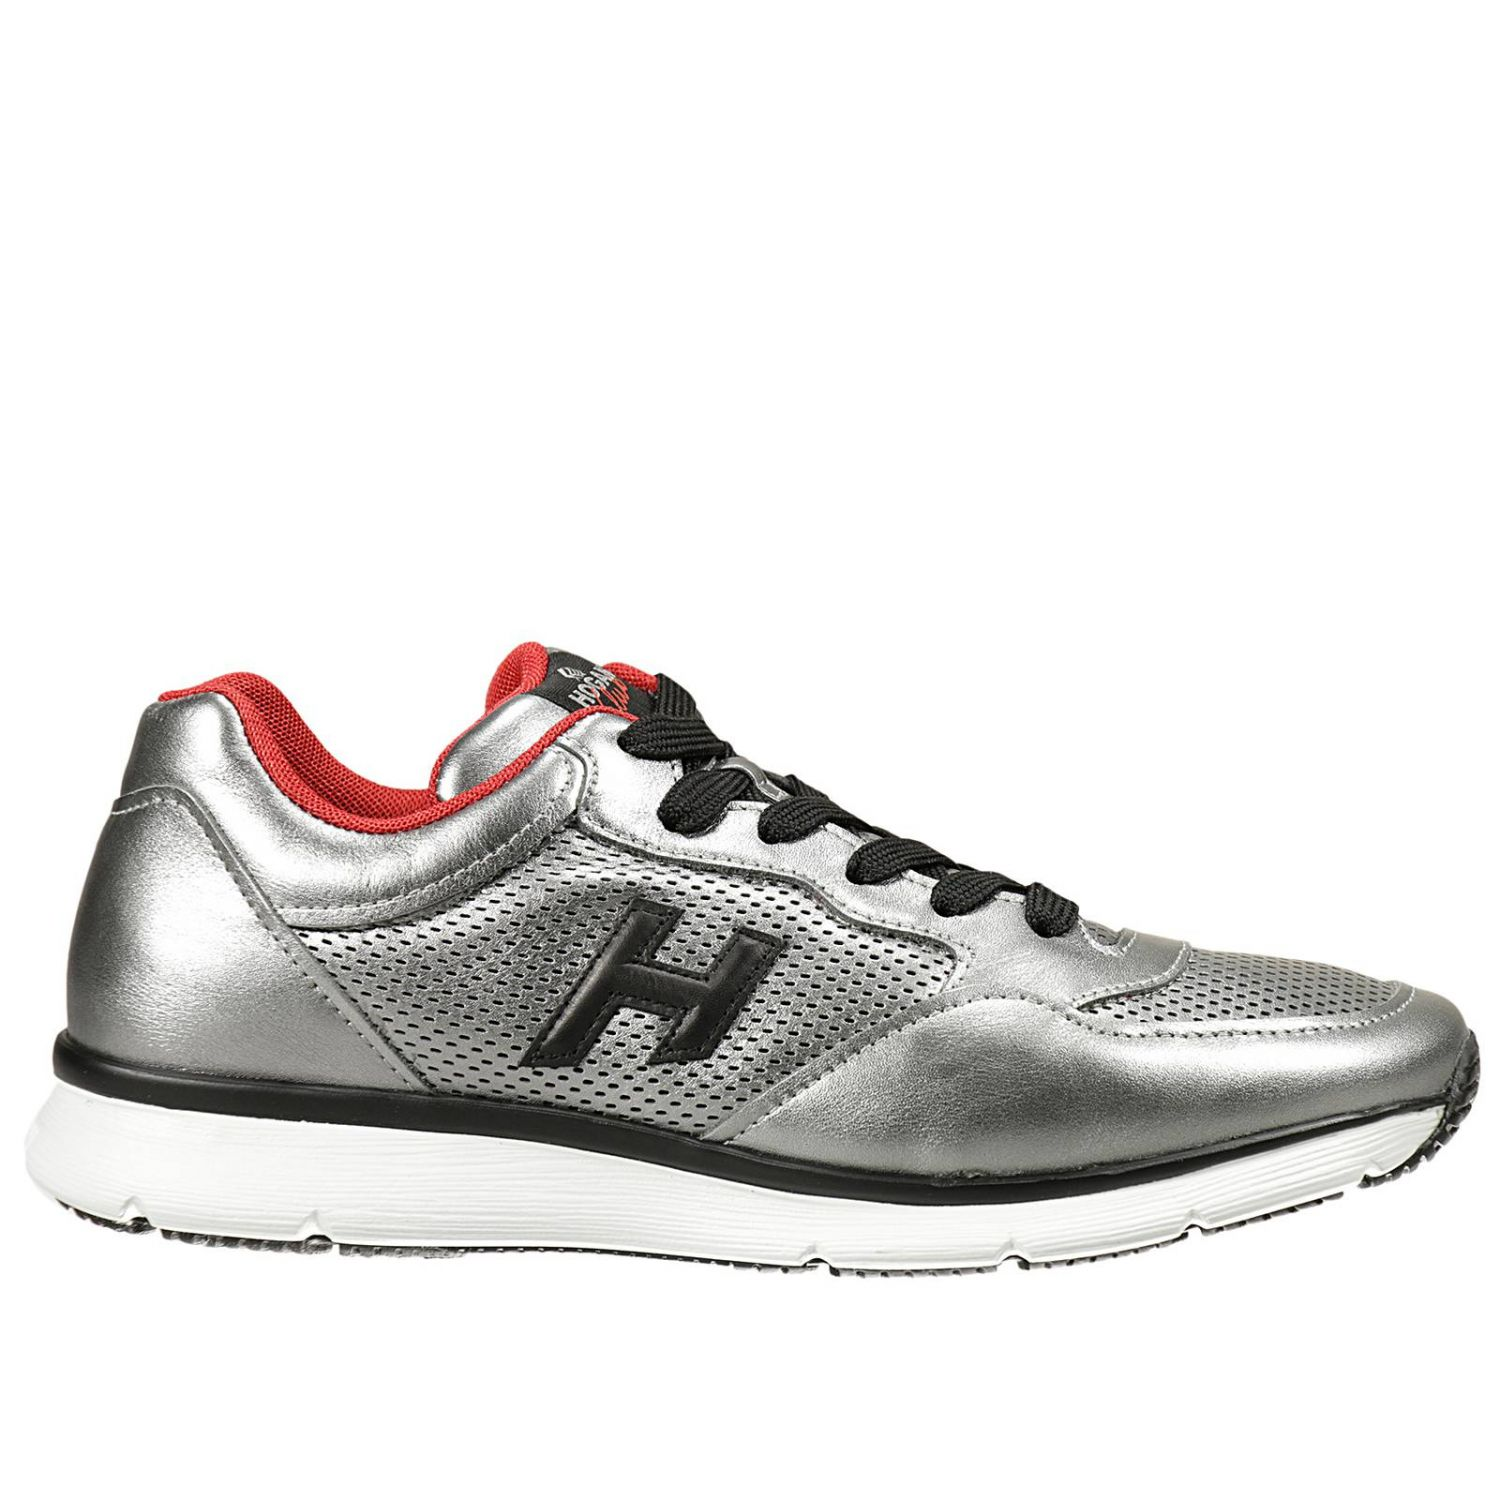 Sneakers Hogan Club Men Silver Sneakers Hogan Club Gym2540v960 9jy Giglio En